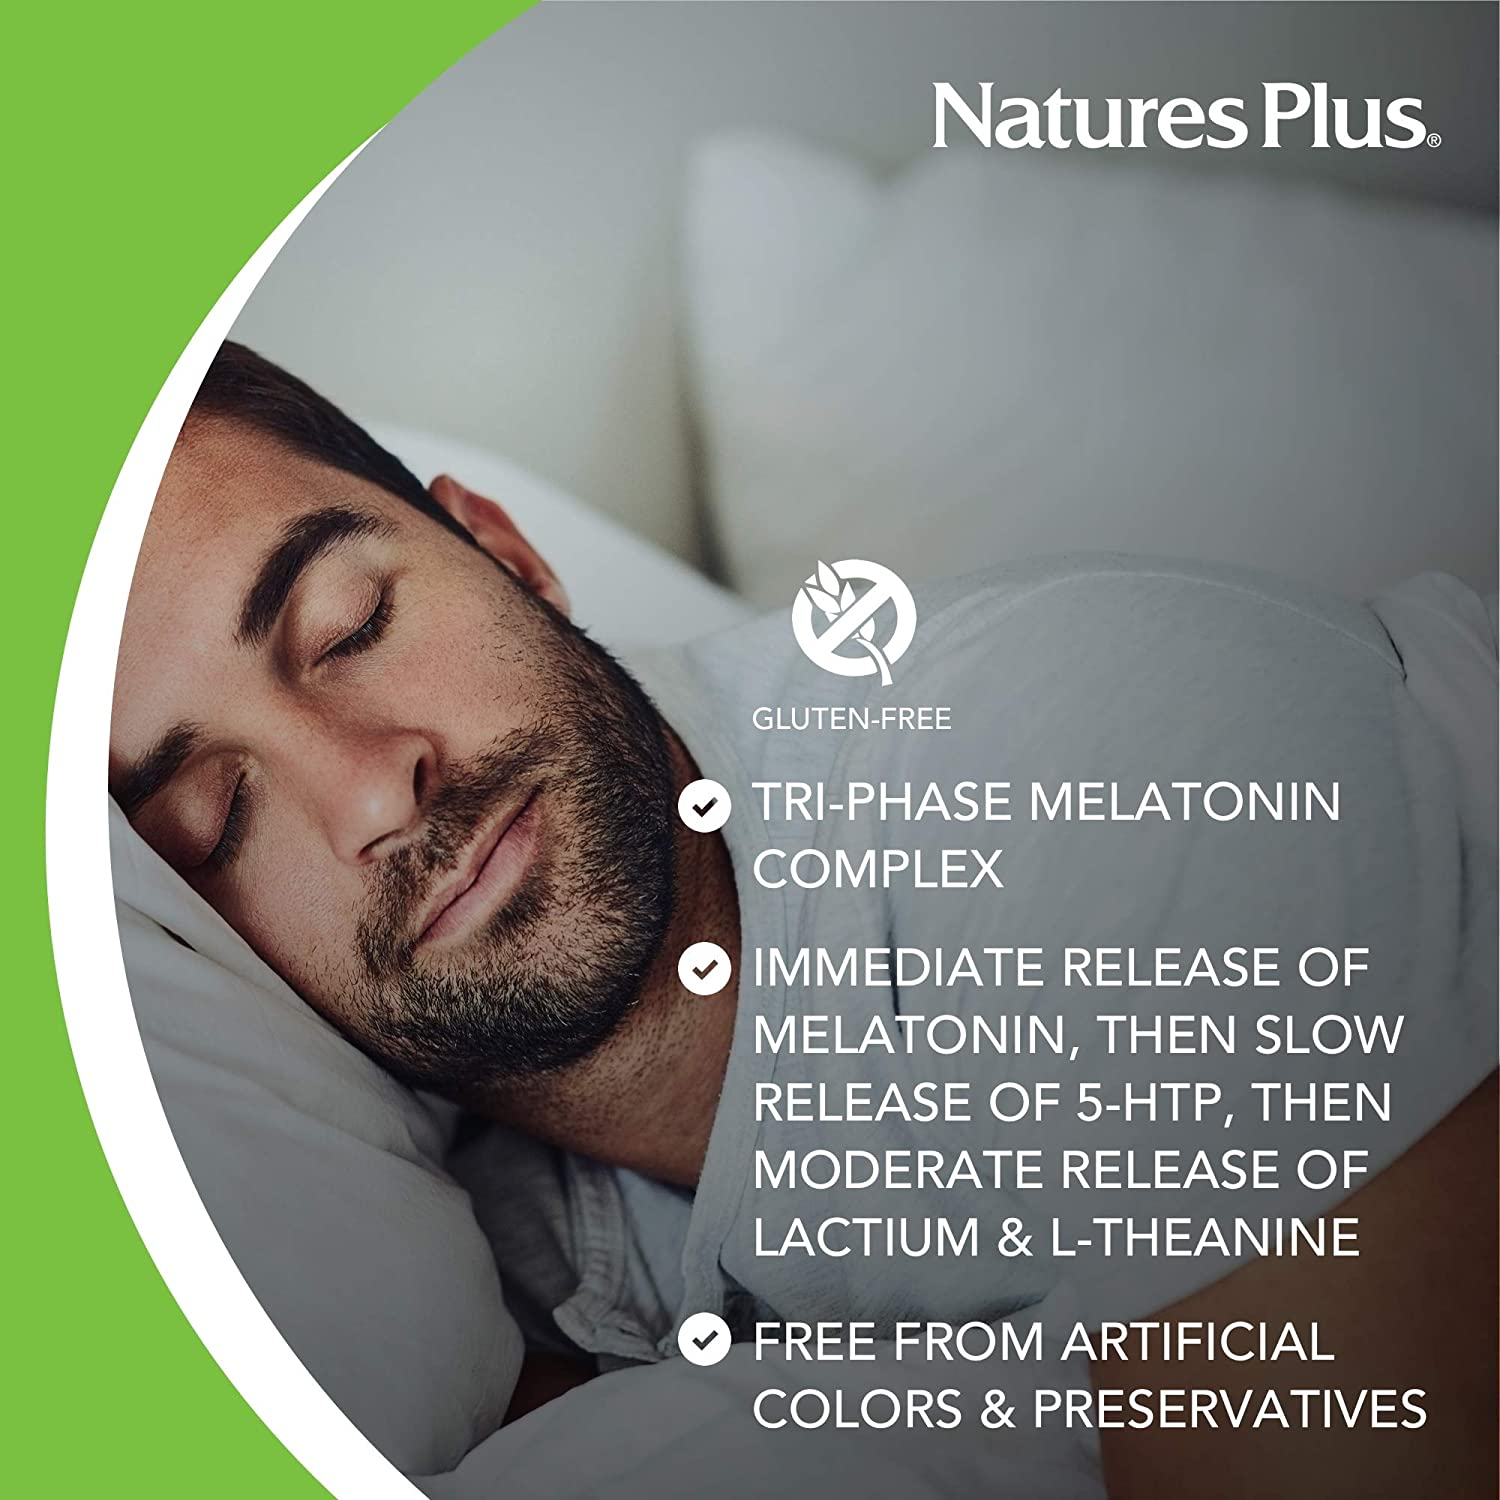 Amazon.com: Natures Plus Dreaminol - 1.5 mg Melatonin, 30 Sustained Release Tablets - Maximum Strength Sleep Support with Lactium, L-Theanine and 5-HTP - 30 ...